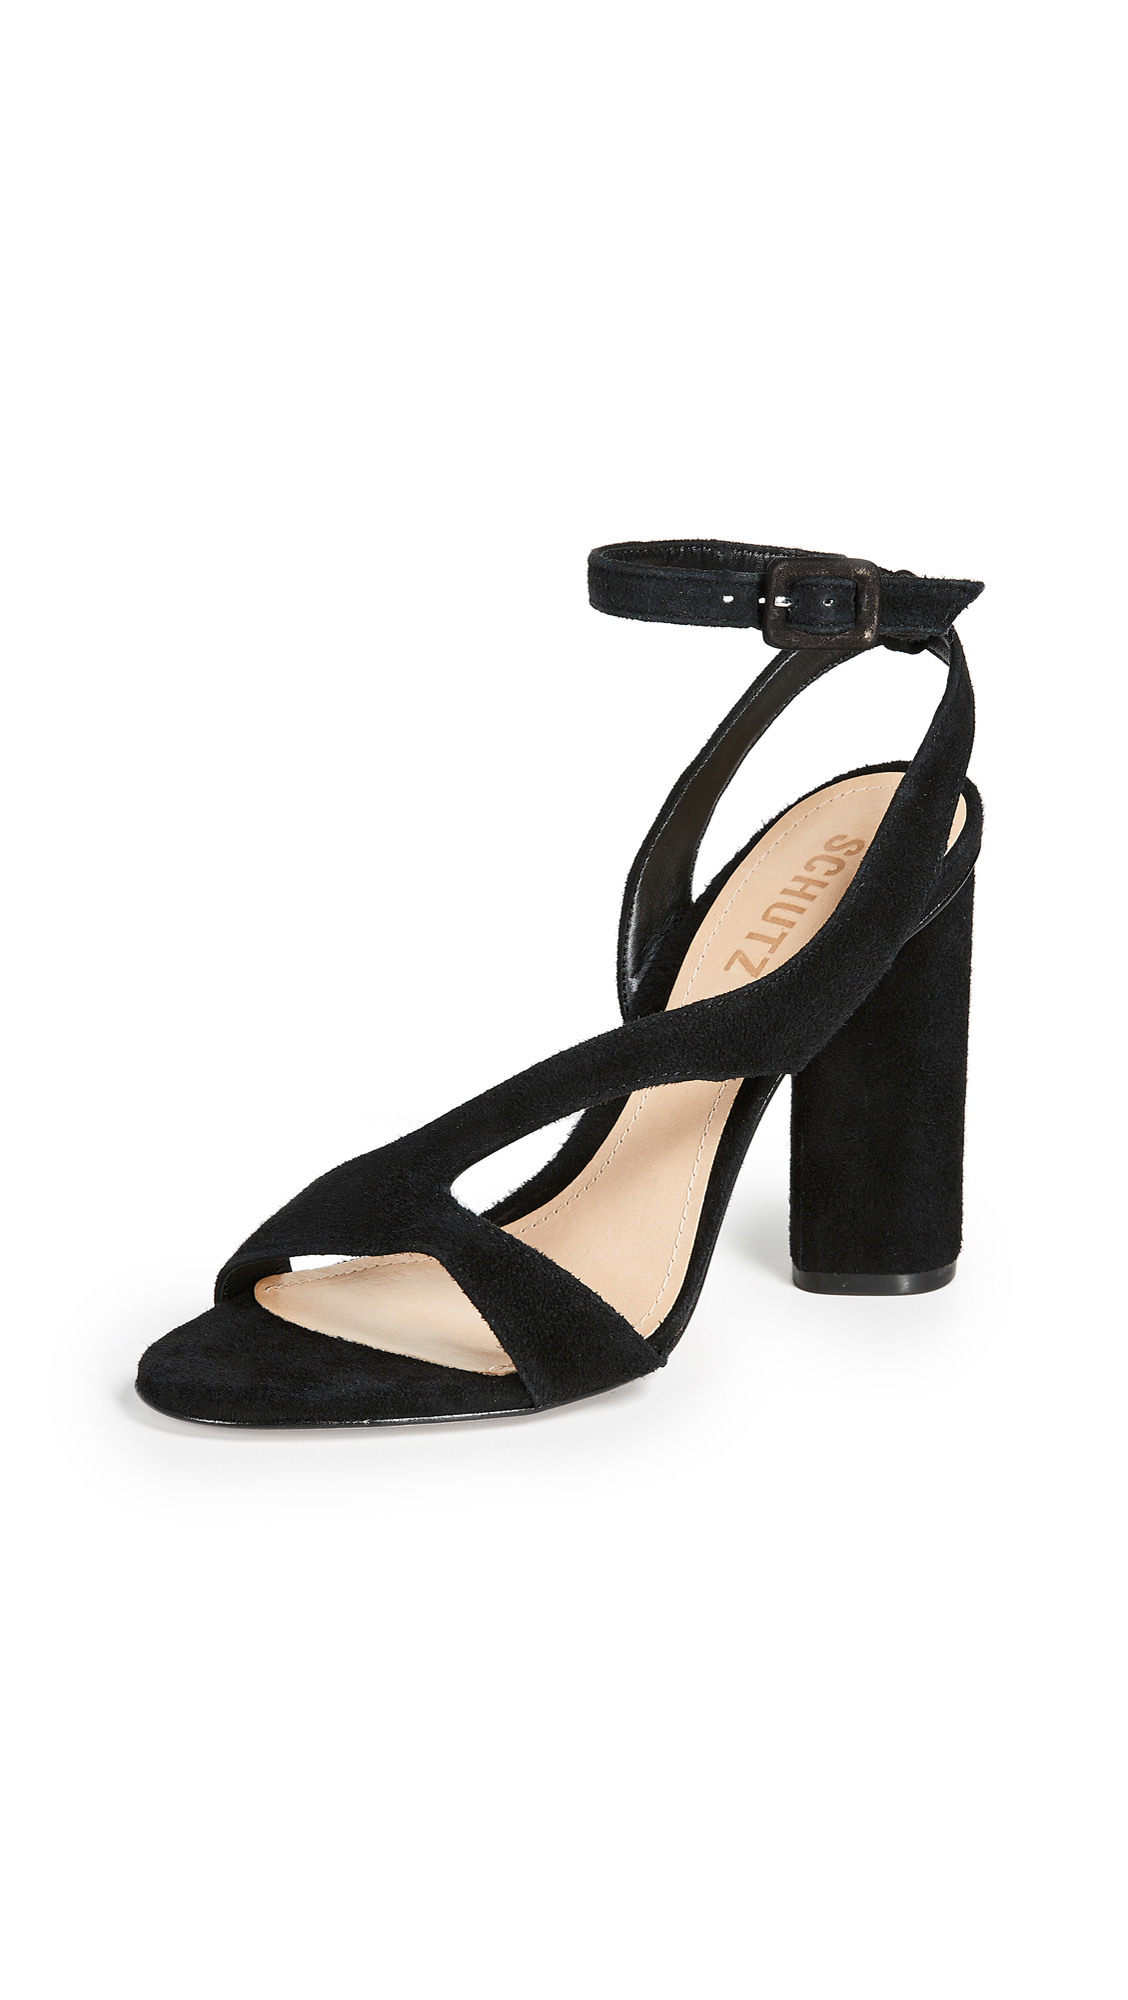 Schutz Rutte Strappy Sandals - Black